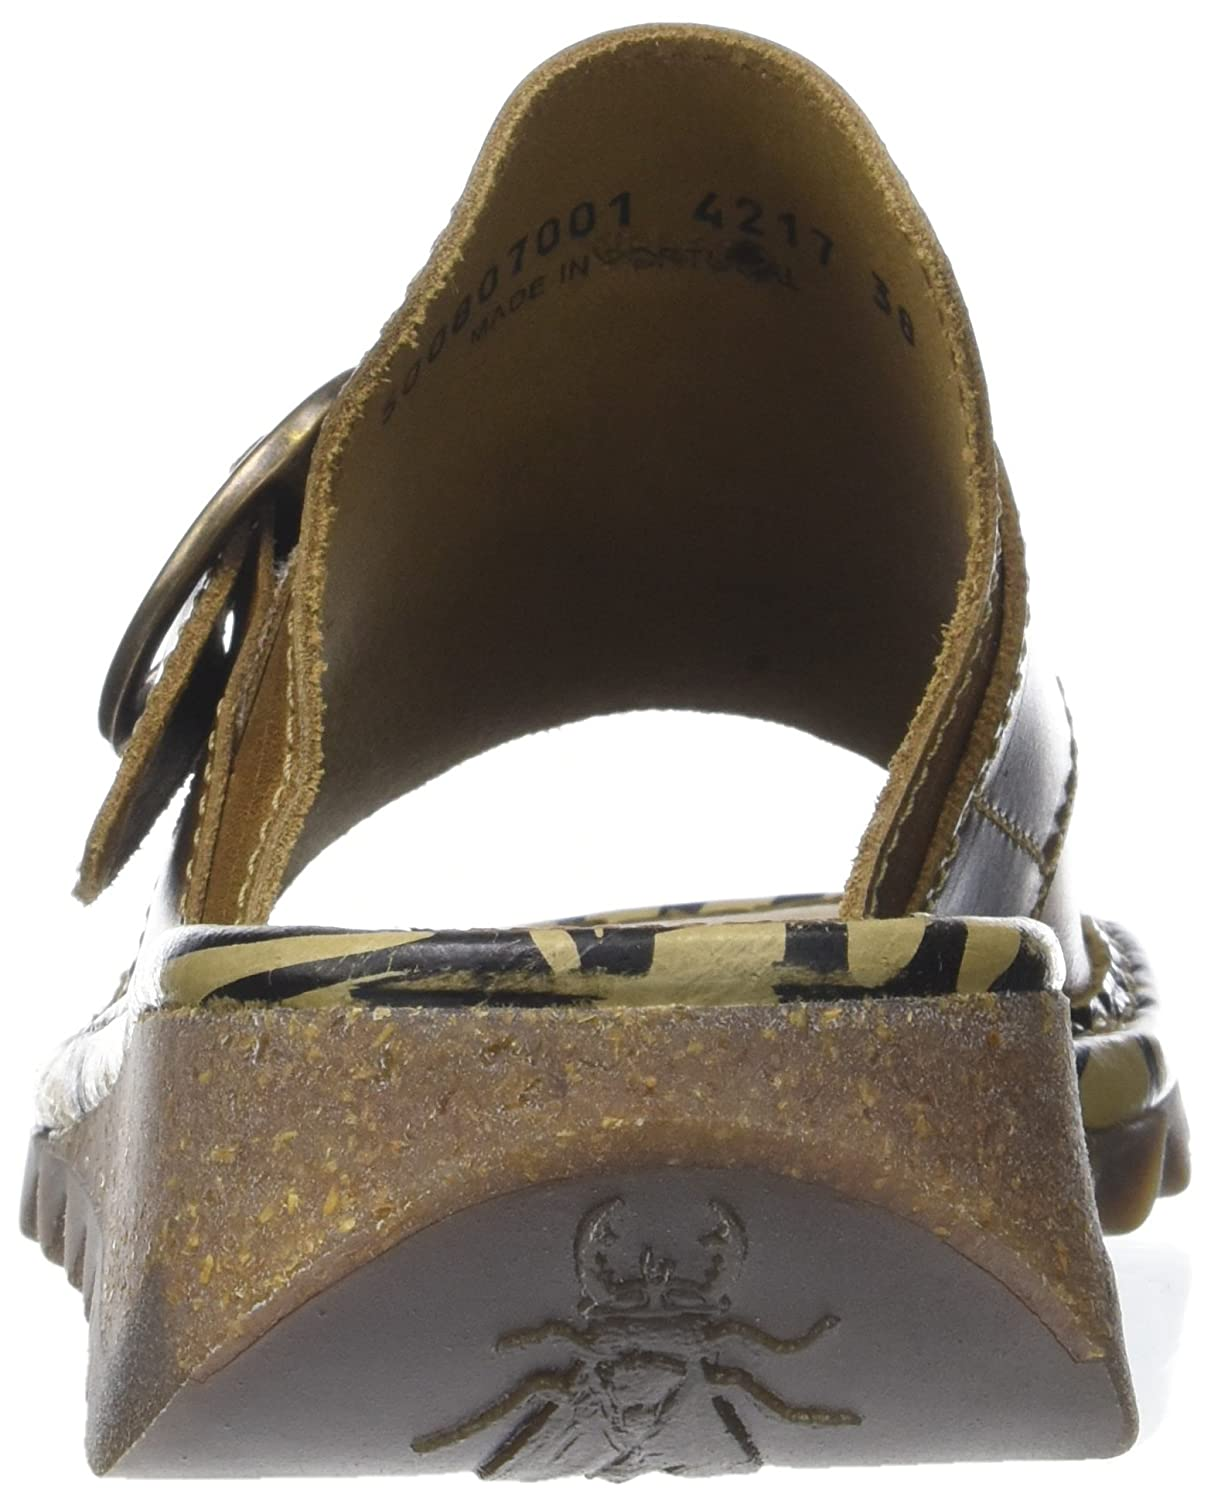 Men's/Women's Fly London Sandals P500807001 B077C36YWG low Sandals Selling low B077C36YWG cost fine e9adae